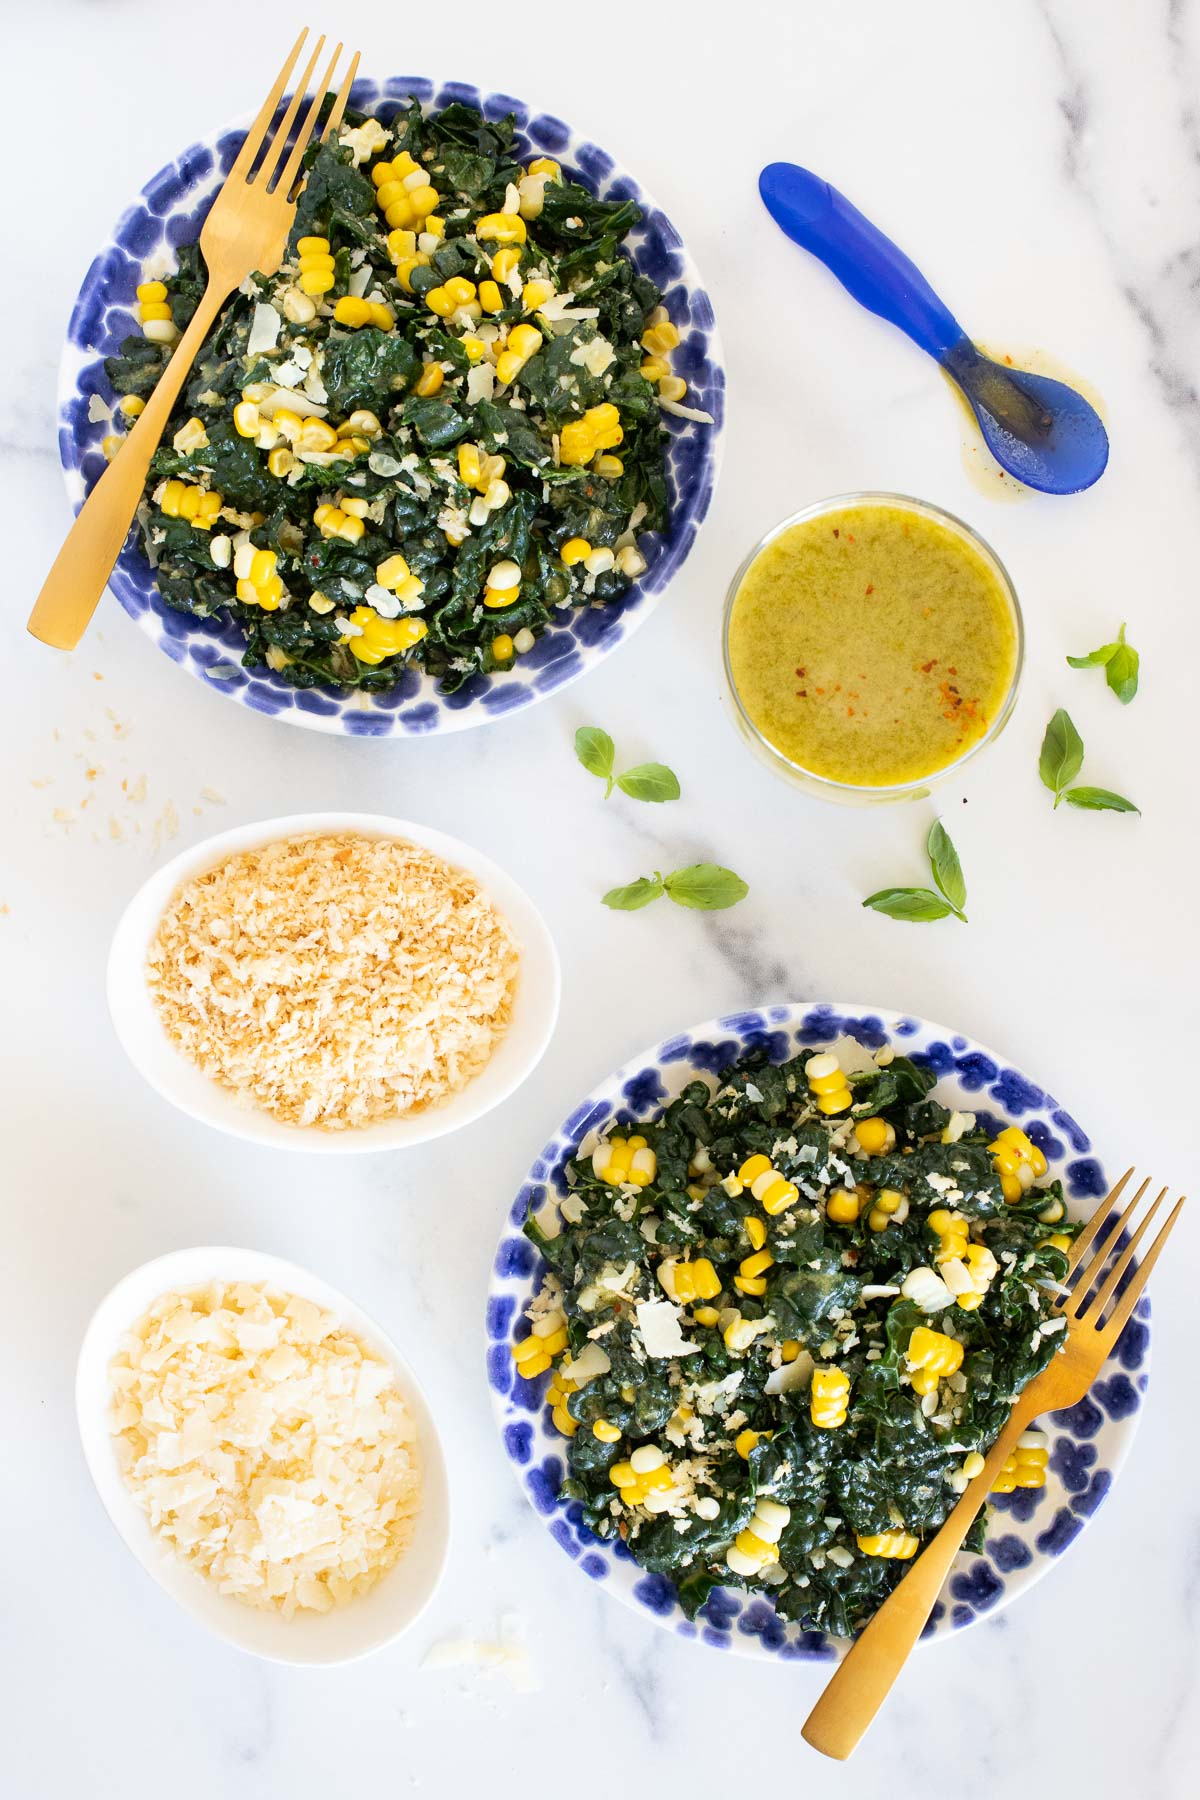 Vertical overhead photo of a Tuscan Kale Salad with Lemon Basil Dressing on a white marble surface.